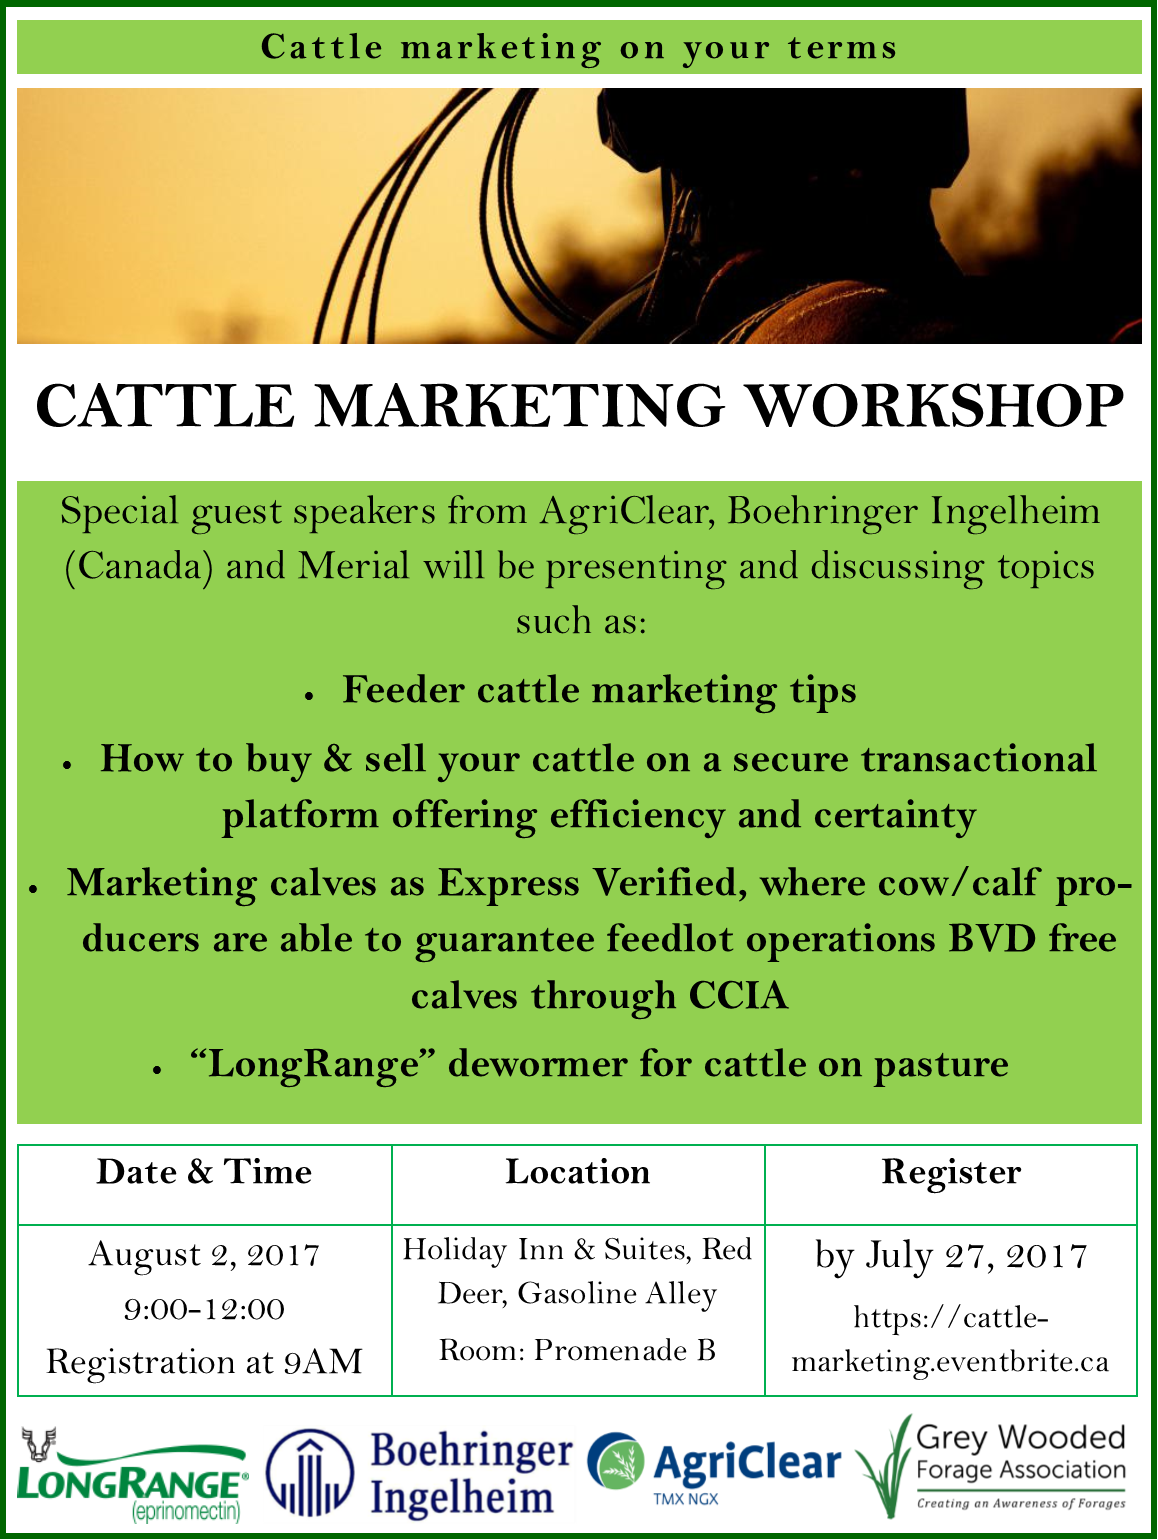 """Special guest speakers from AgriClear, Boehringer Ingelheim (Canada) and Merial will be presenting and discussing topics such as: Feeder cattle marketing tips How to buy & sell your cattle on a secure transactional platform offering efficiency and certainty Marketing calves as Express Verified, where cow/calf producers are able to guarantee feedlot operations BVD free calves through CCIA  """"LongRange"""" dewormer for cattle on pasture"""